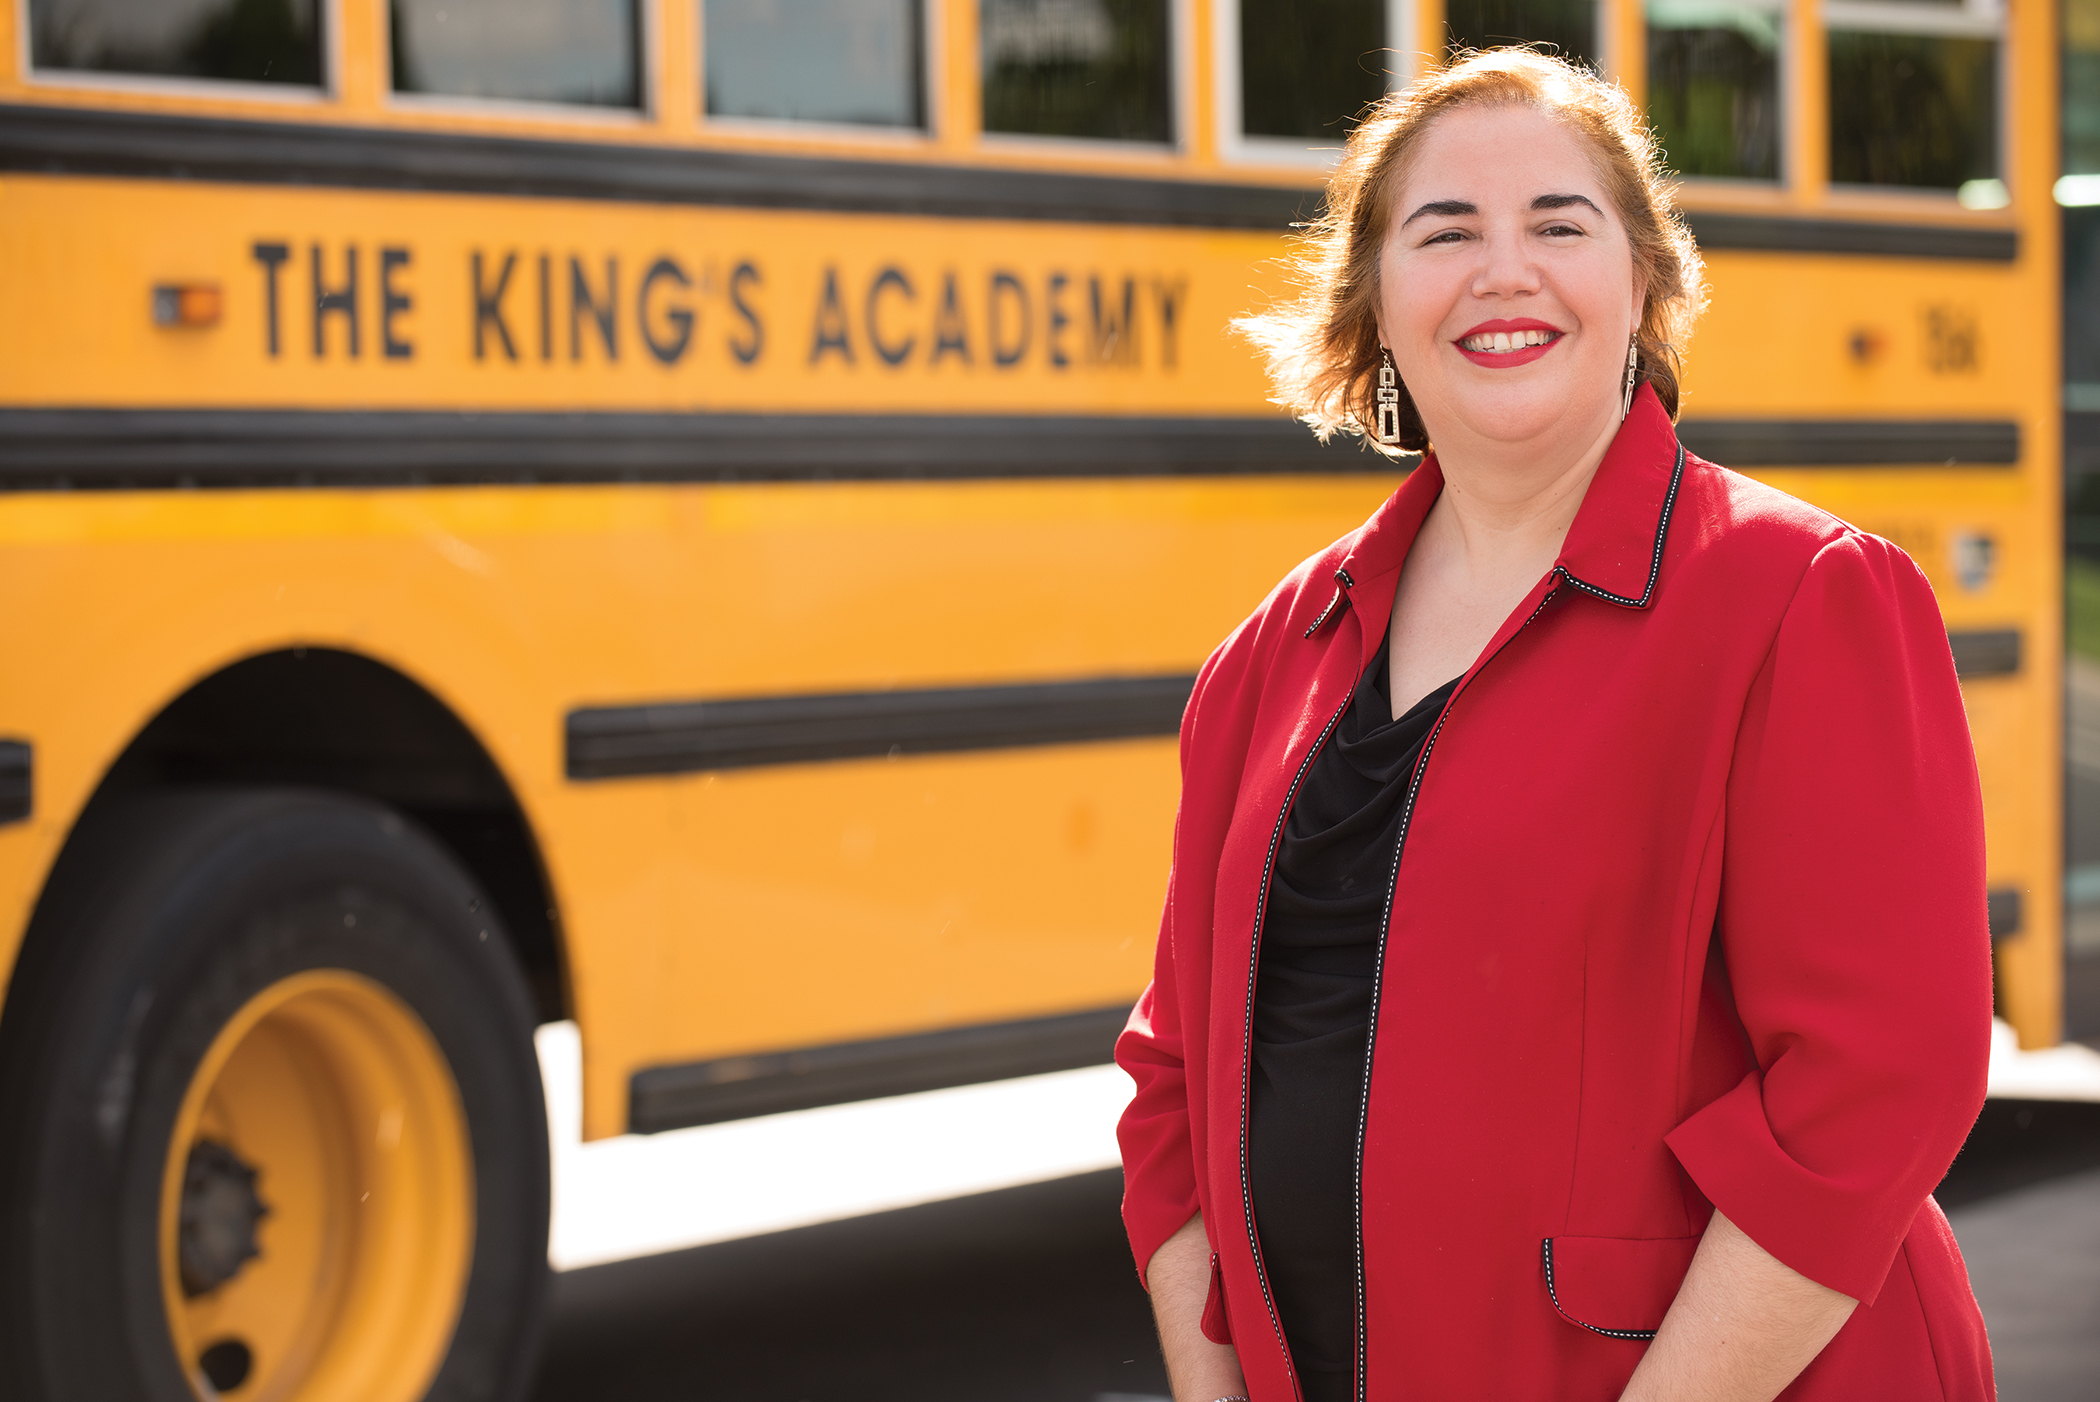 Former attorney Lizardo is now a teacher at The King's Academy.